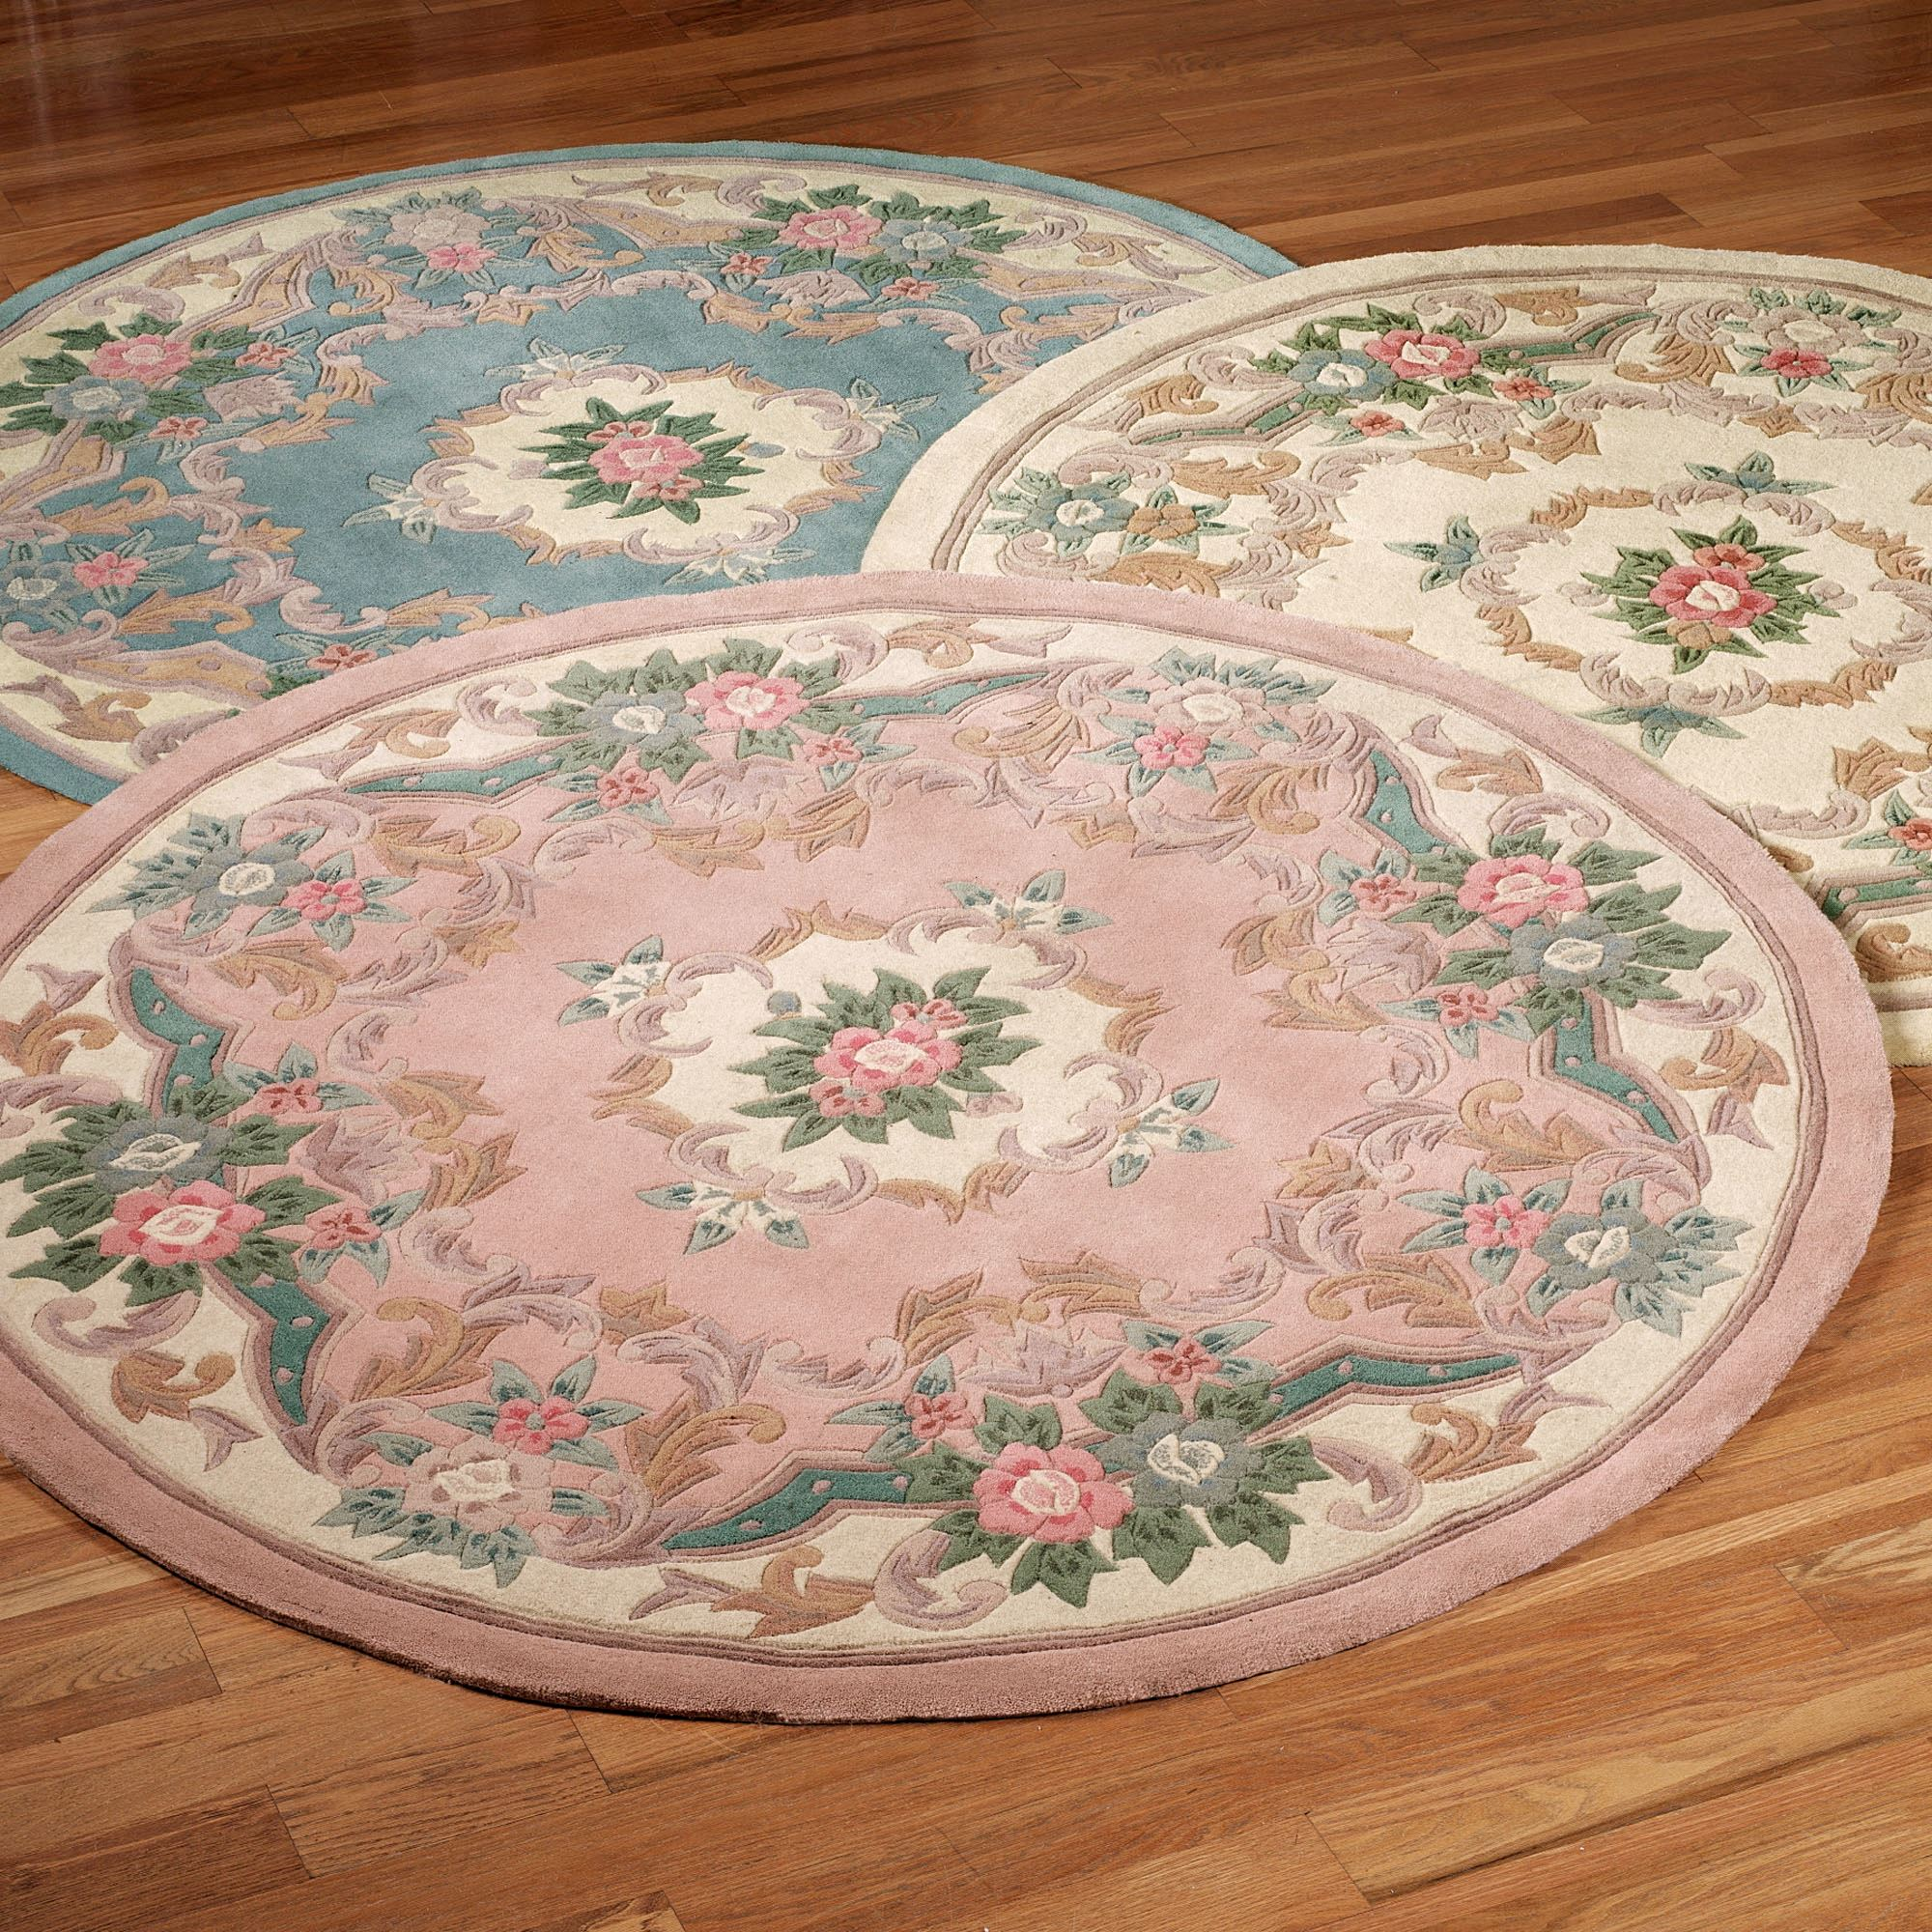 Cool Antique Aubusson Rugs | Magnificent Aubusson Rugs